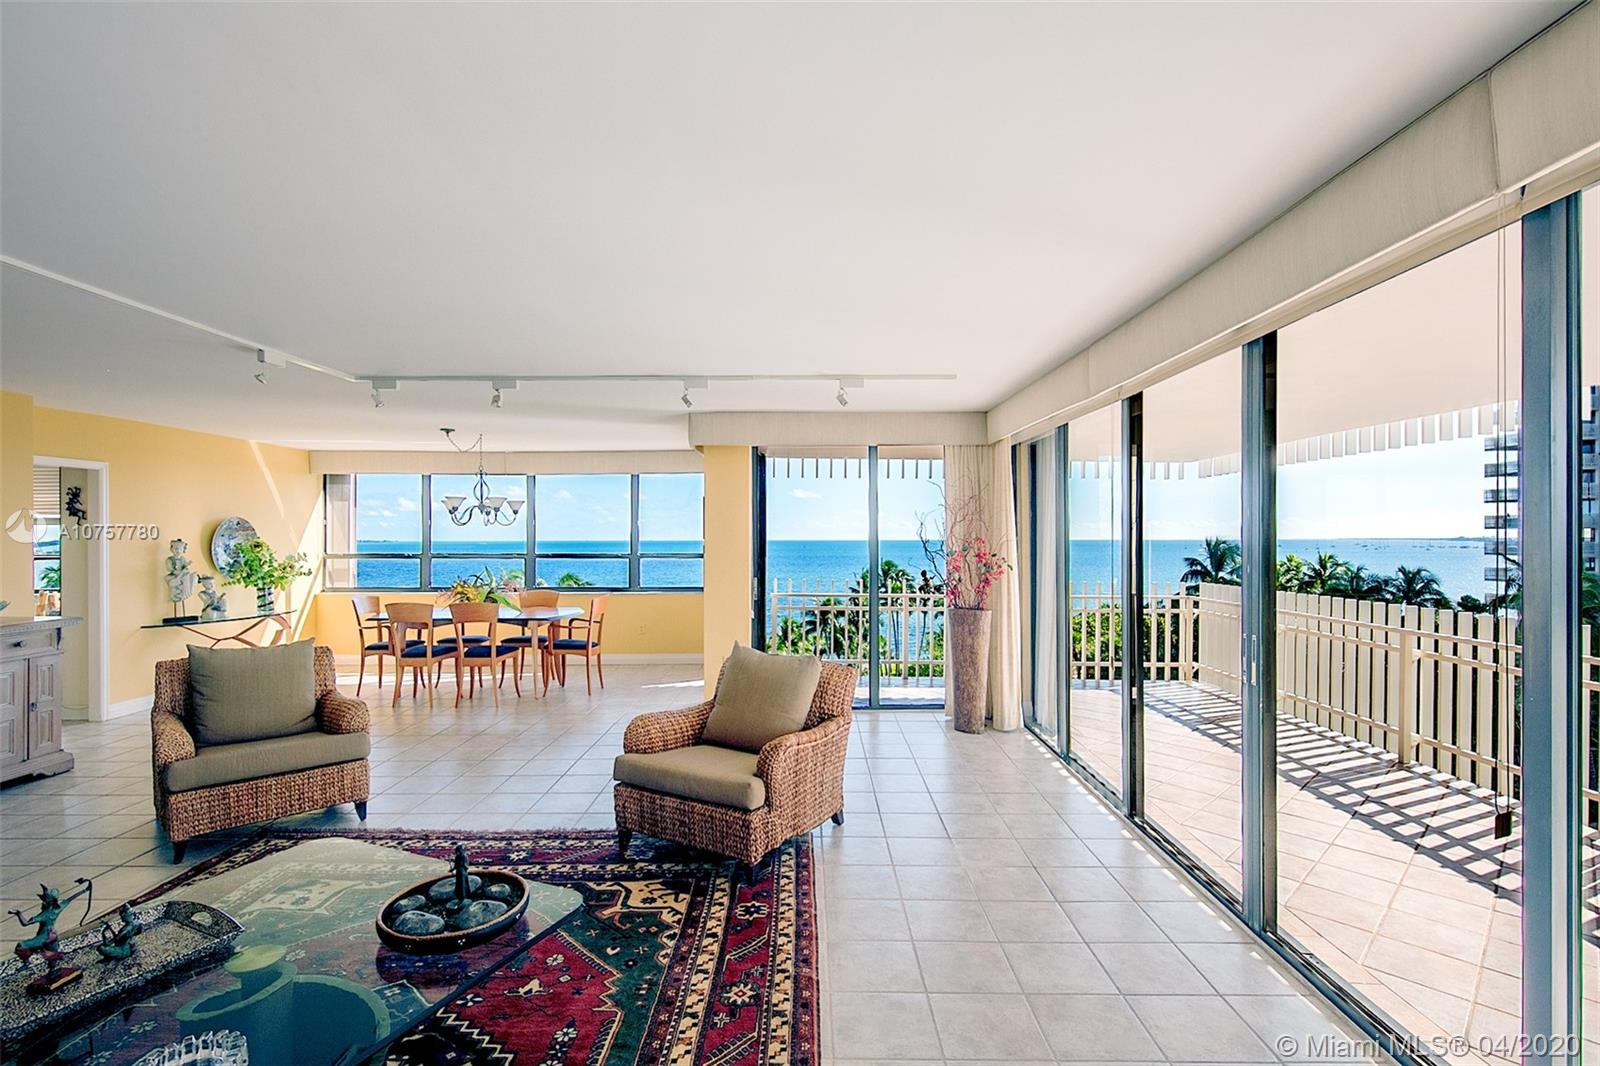 2 Grove Isle Dr # B602, Coconut Grove, Florida 33133, 3 Bedrooms Bedrooms, ,2 BathroomsBathrooms,Residential,For Sale,2 Grove Isle Dr # B602,A10757780